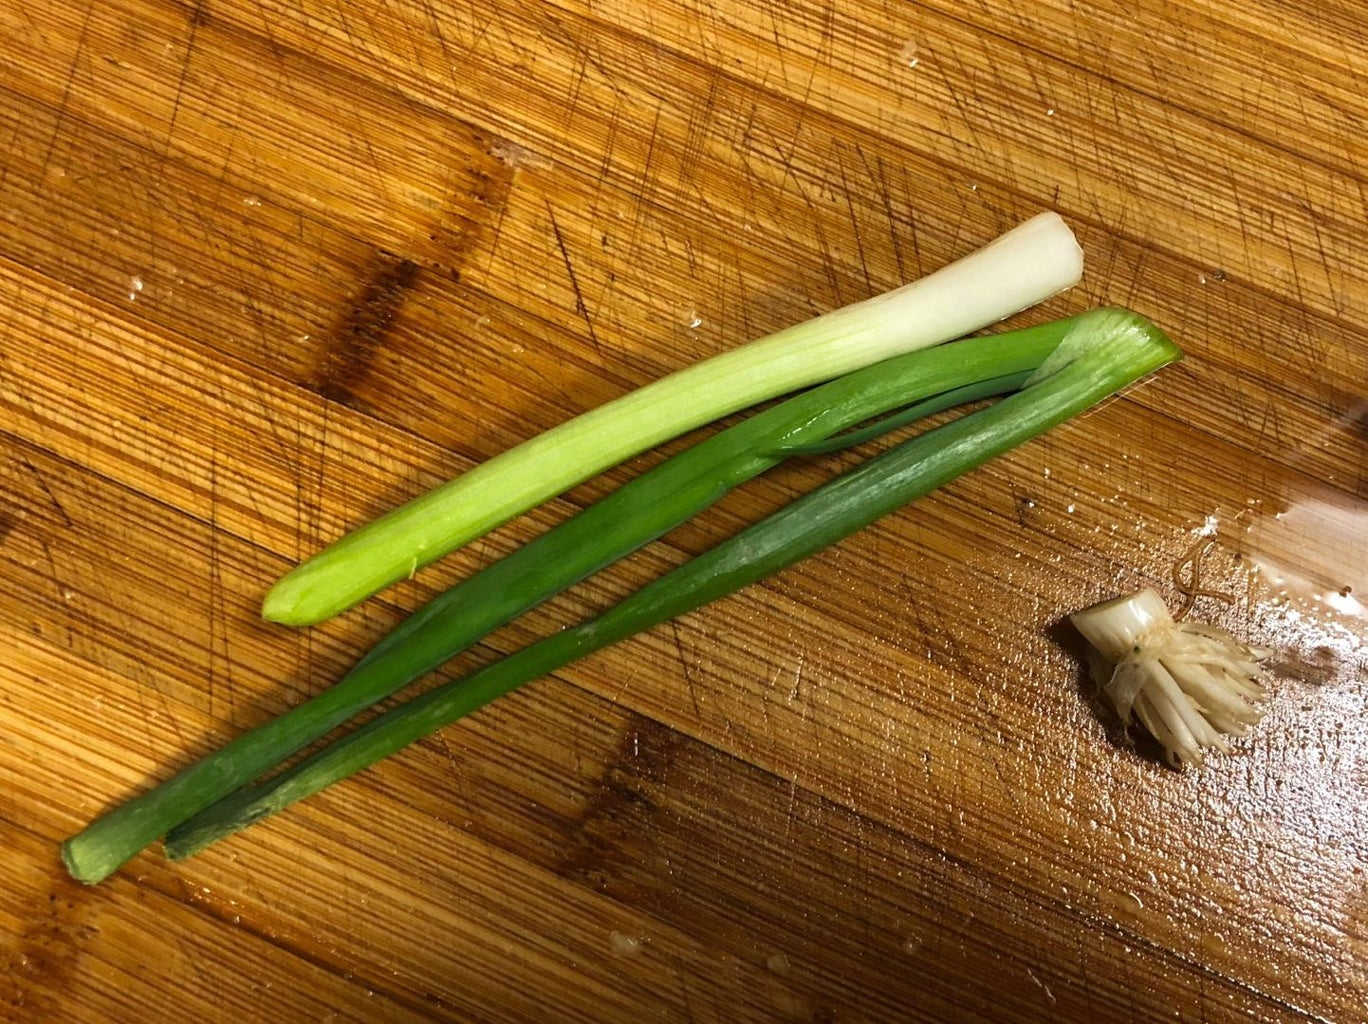 Add More Flavor - Grind Green Onion and Ginger